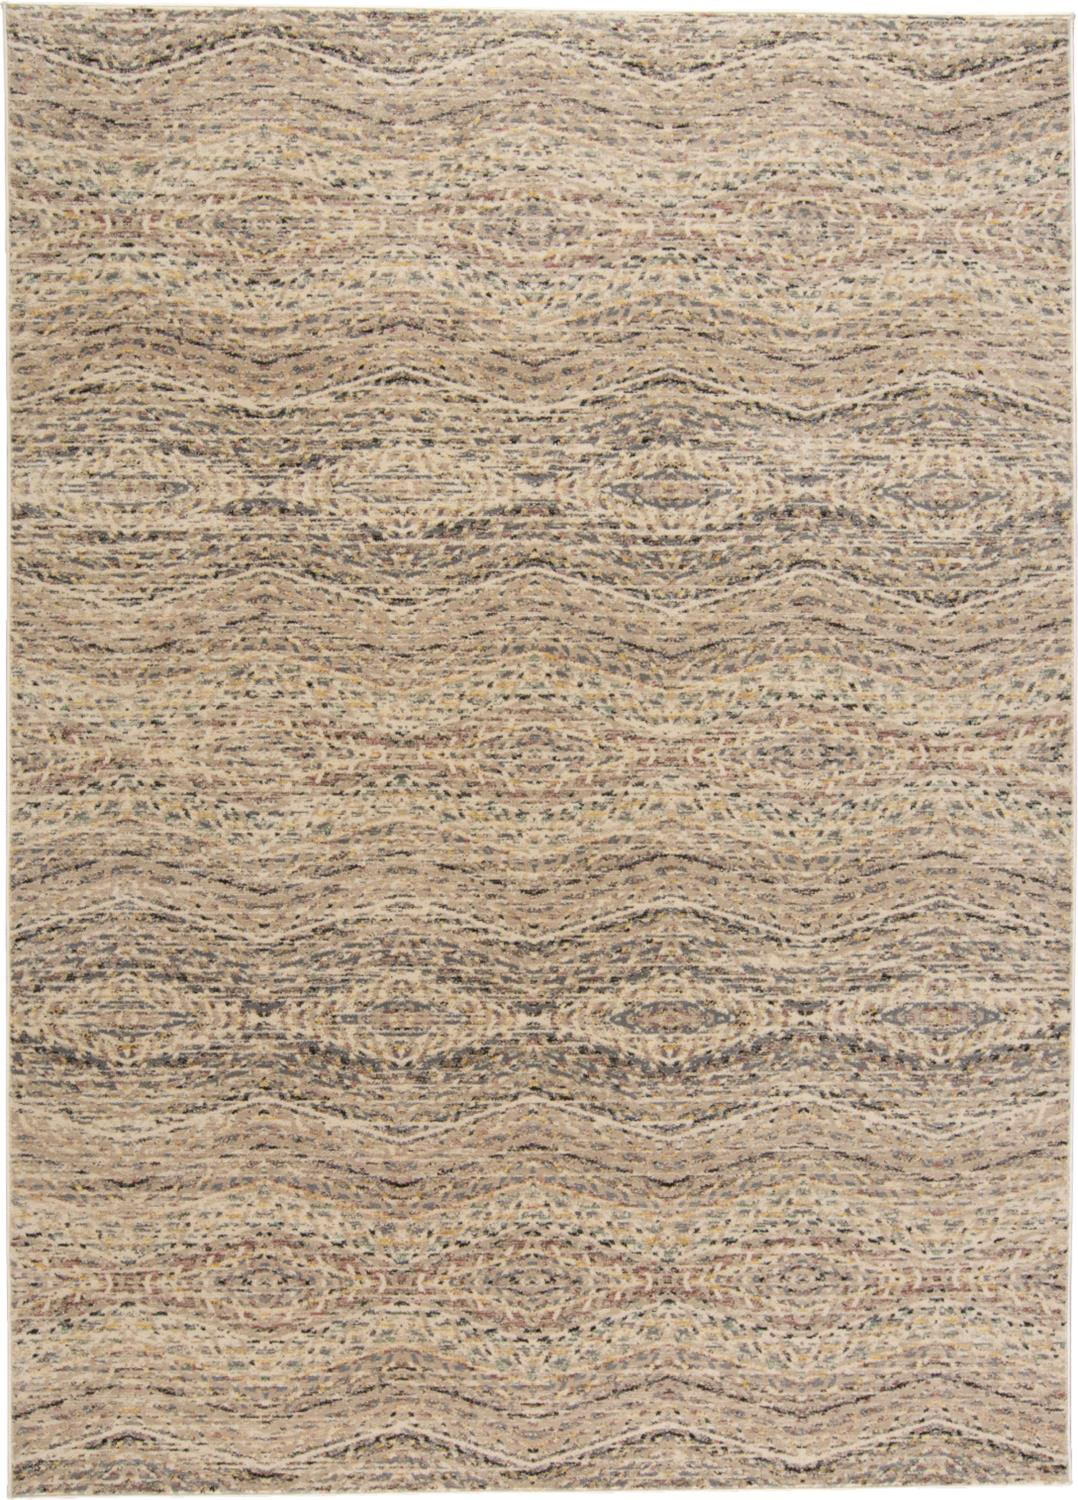 Grayson 3576F IN BEIGE/MULTI